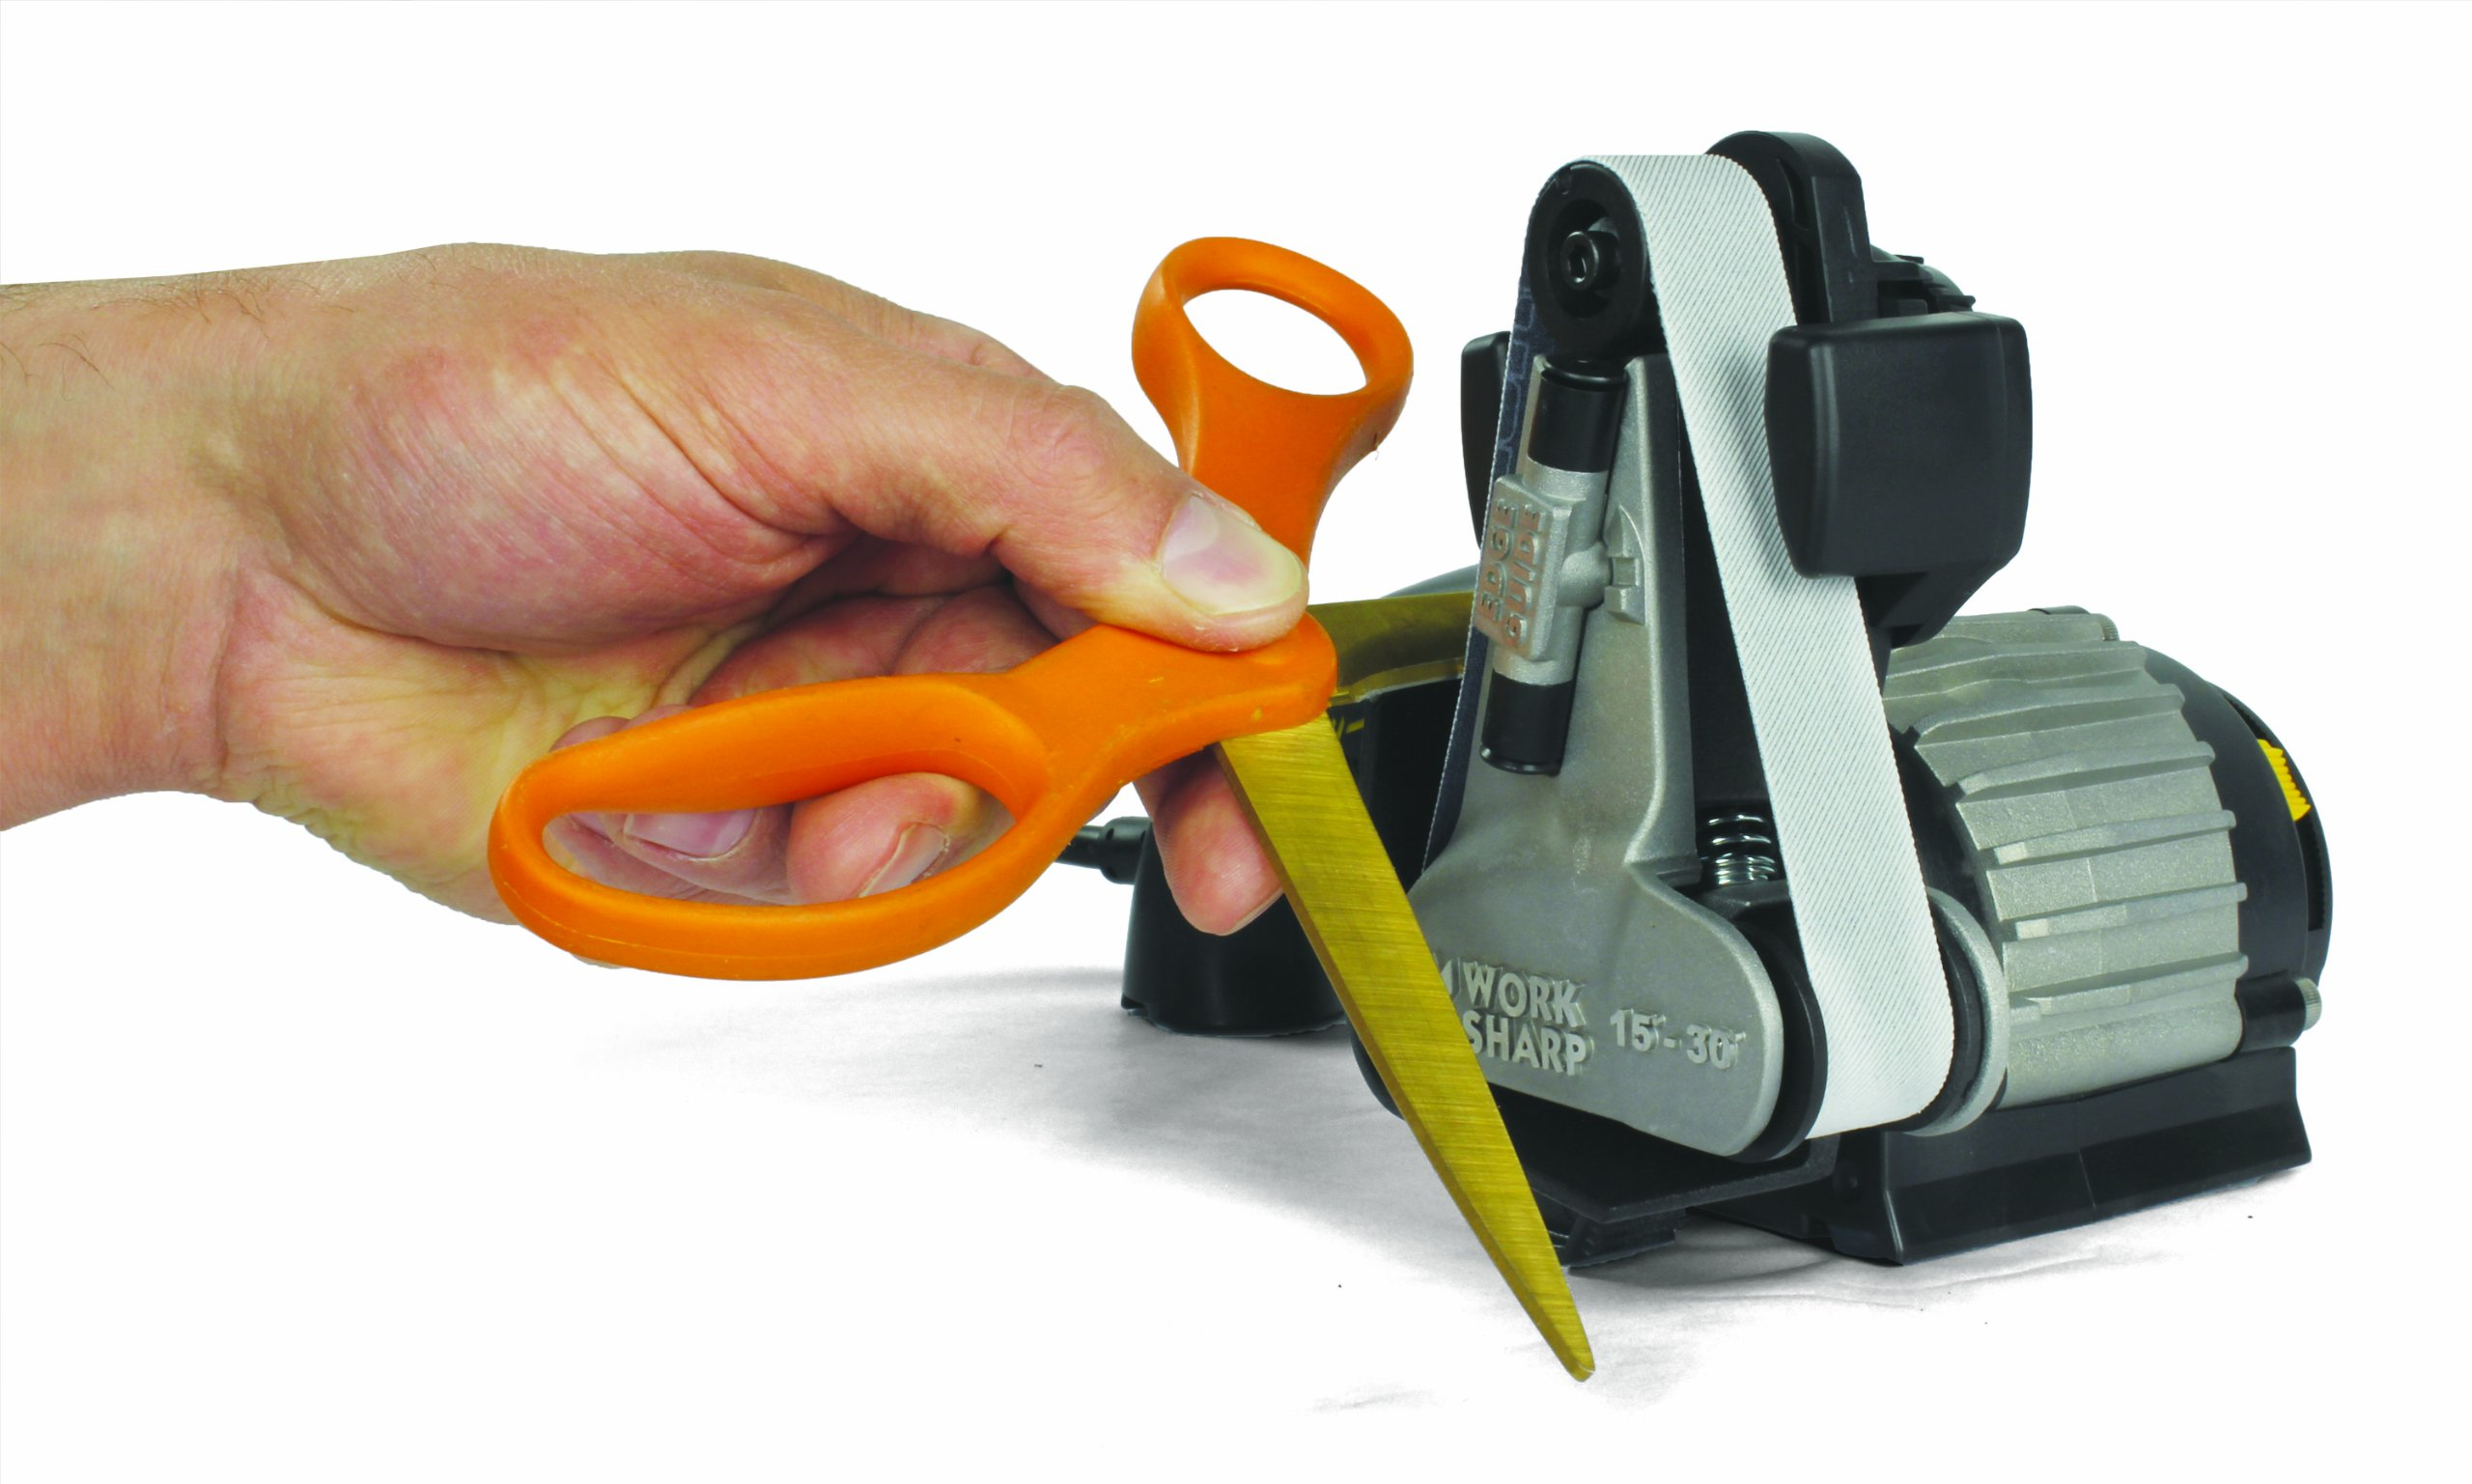 Work Sharp Ken Onion Edition, Fast, Repeatable, & Precision Sharpening from 15° to 30°, Premium Flexible Abrasive Belts, Variable Speed Motor, & Multi-Positioning Sharpening Module by Work Sharp